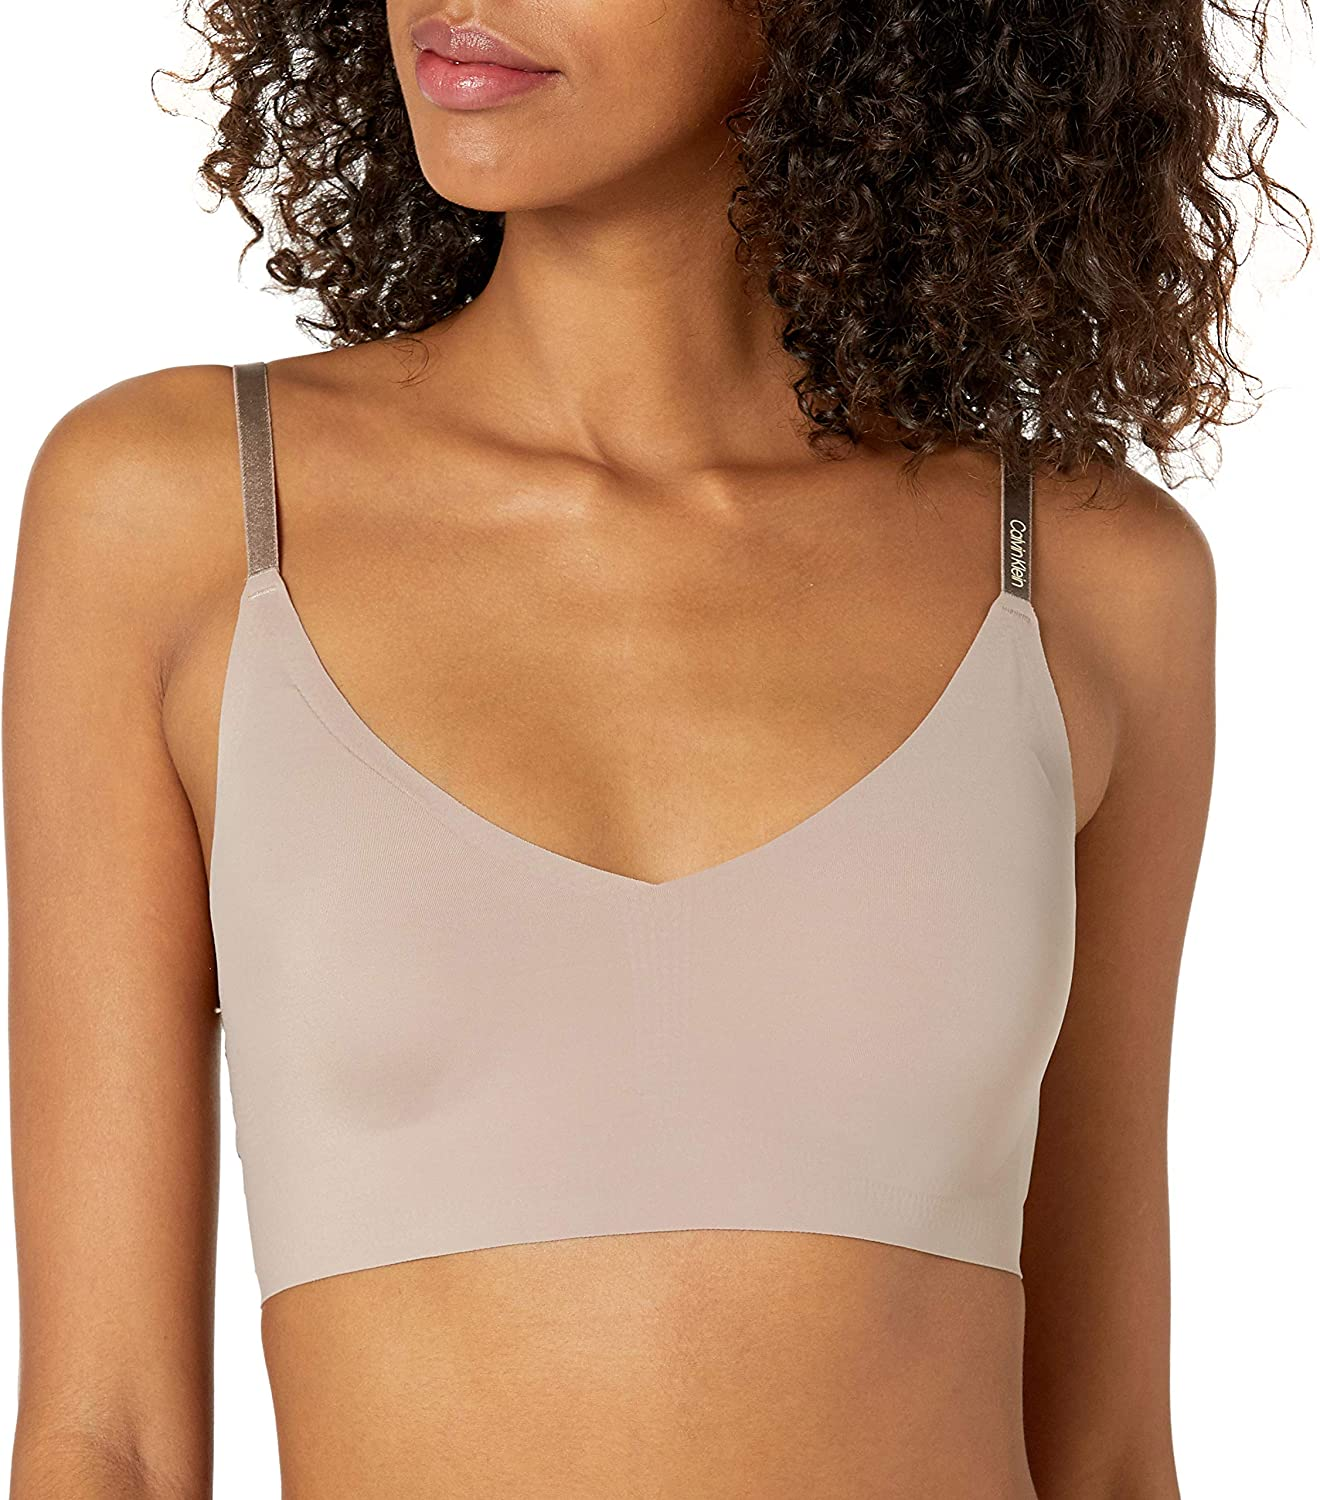 Calvin Klein Women's Invisibles Comfort Seamless Wirefree Lightly Lined Triangle Bralette Bra at  Women's Clothing store